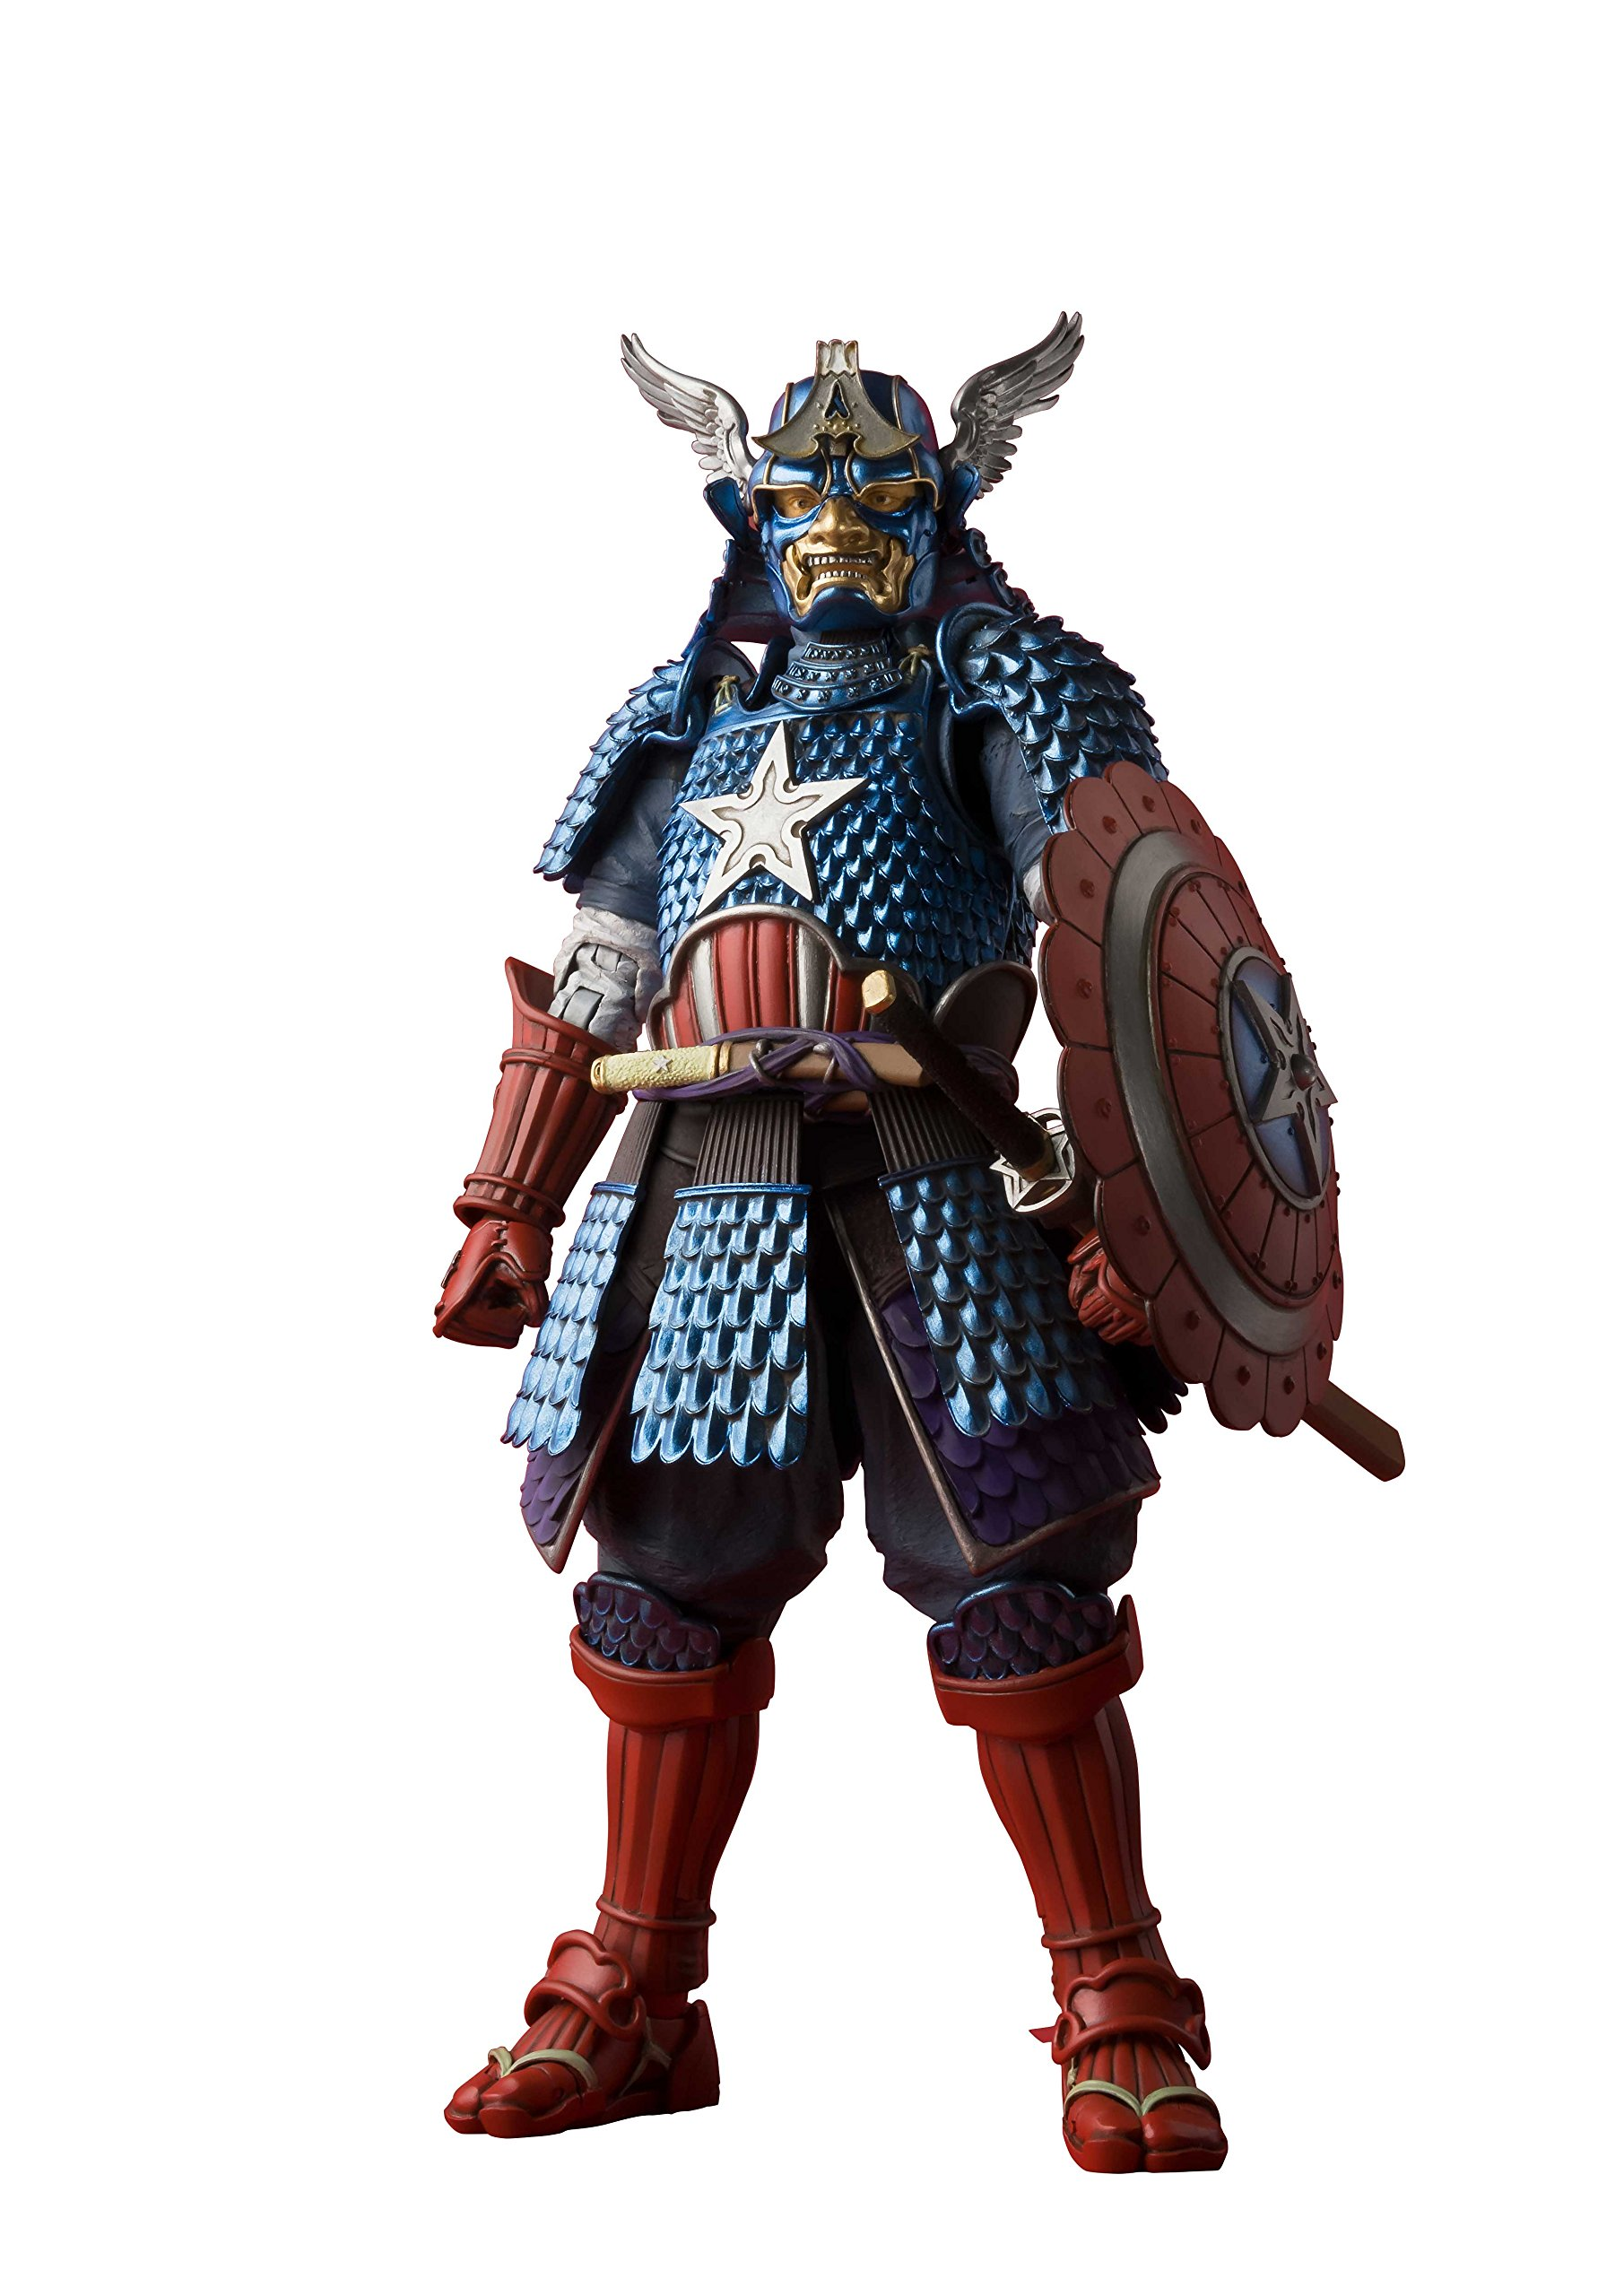 Tamashii Nations Bandai Meisho Manga Realization Samurai Captain America Action Figure